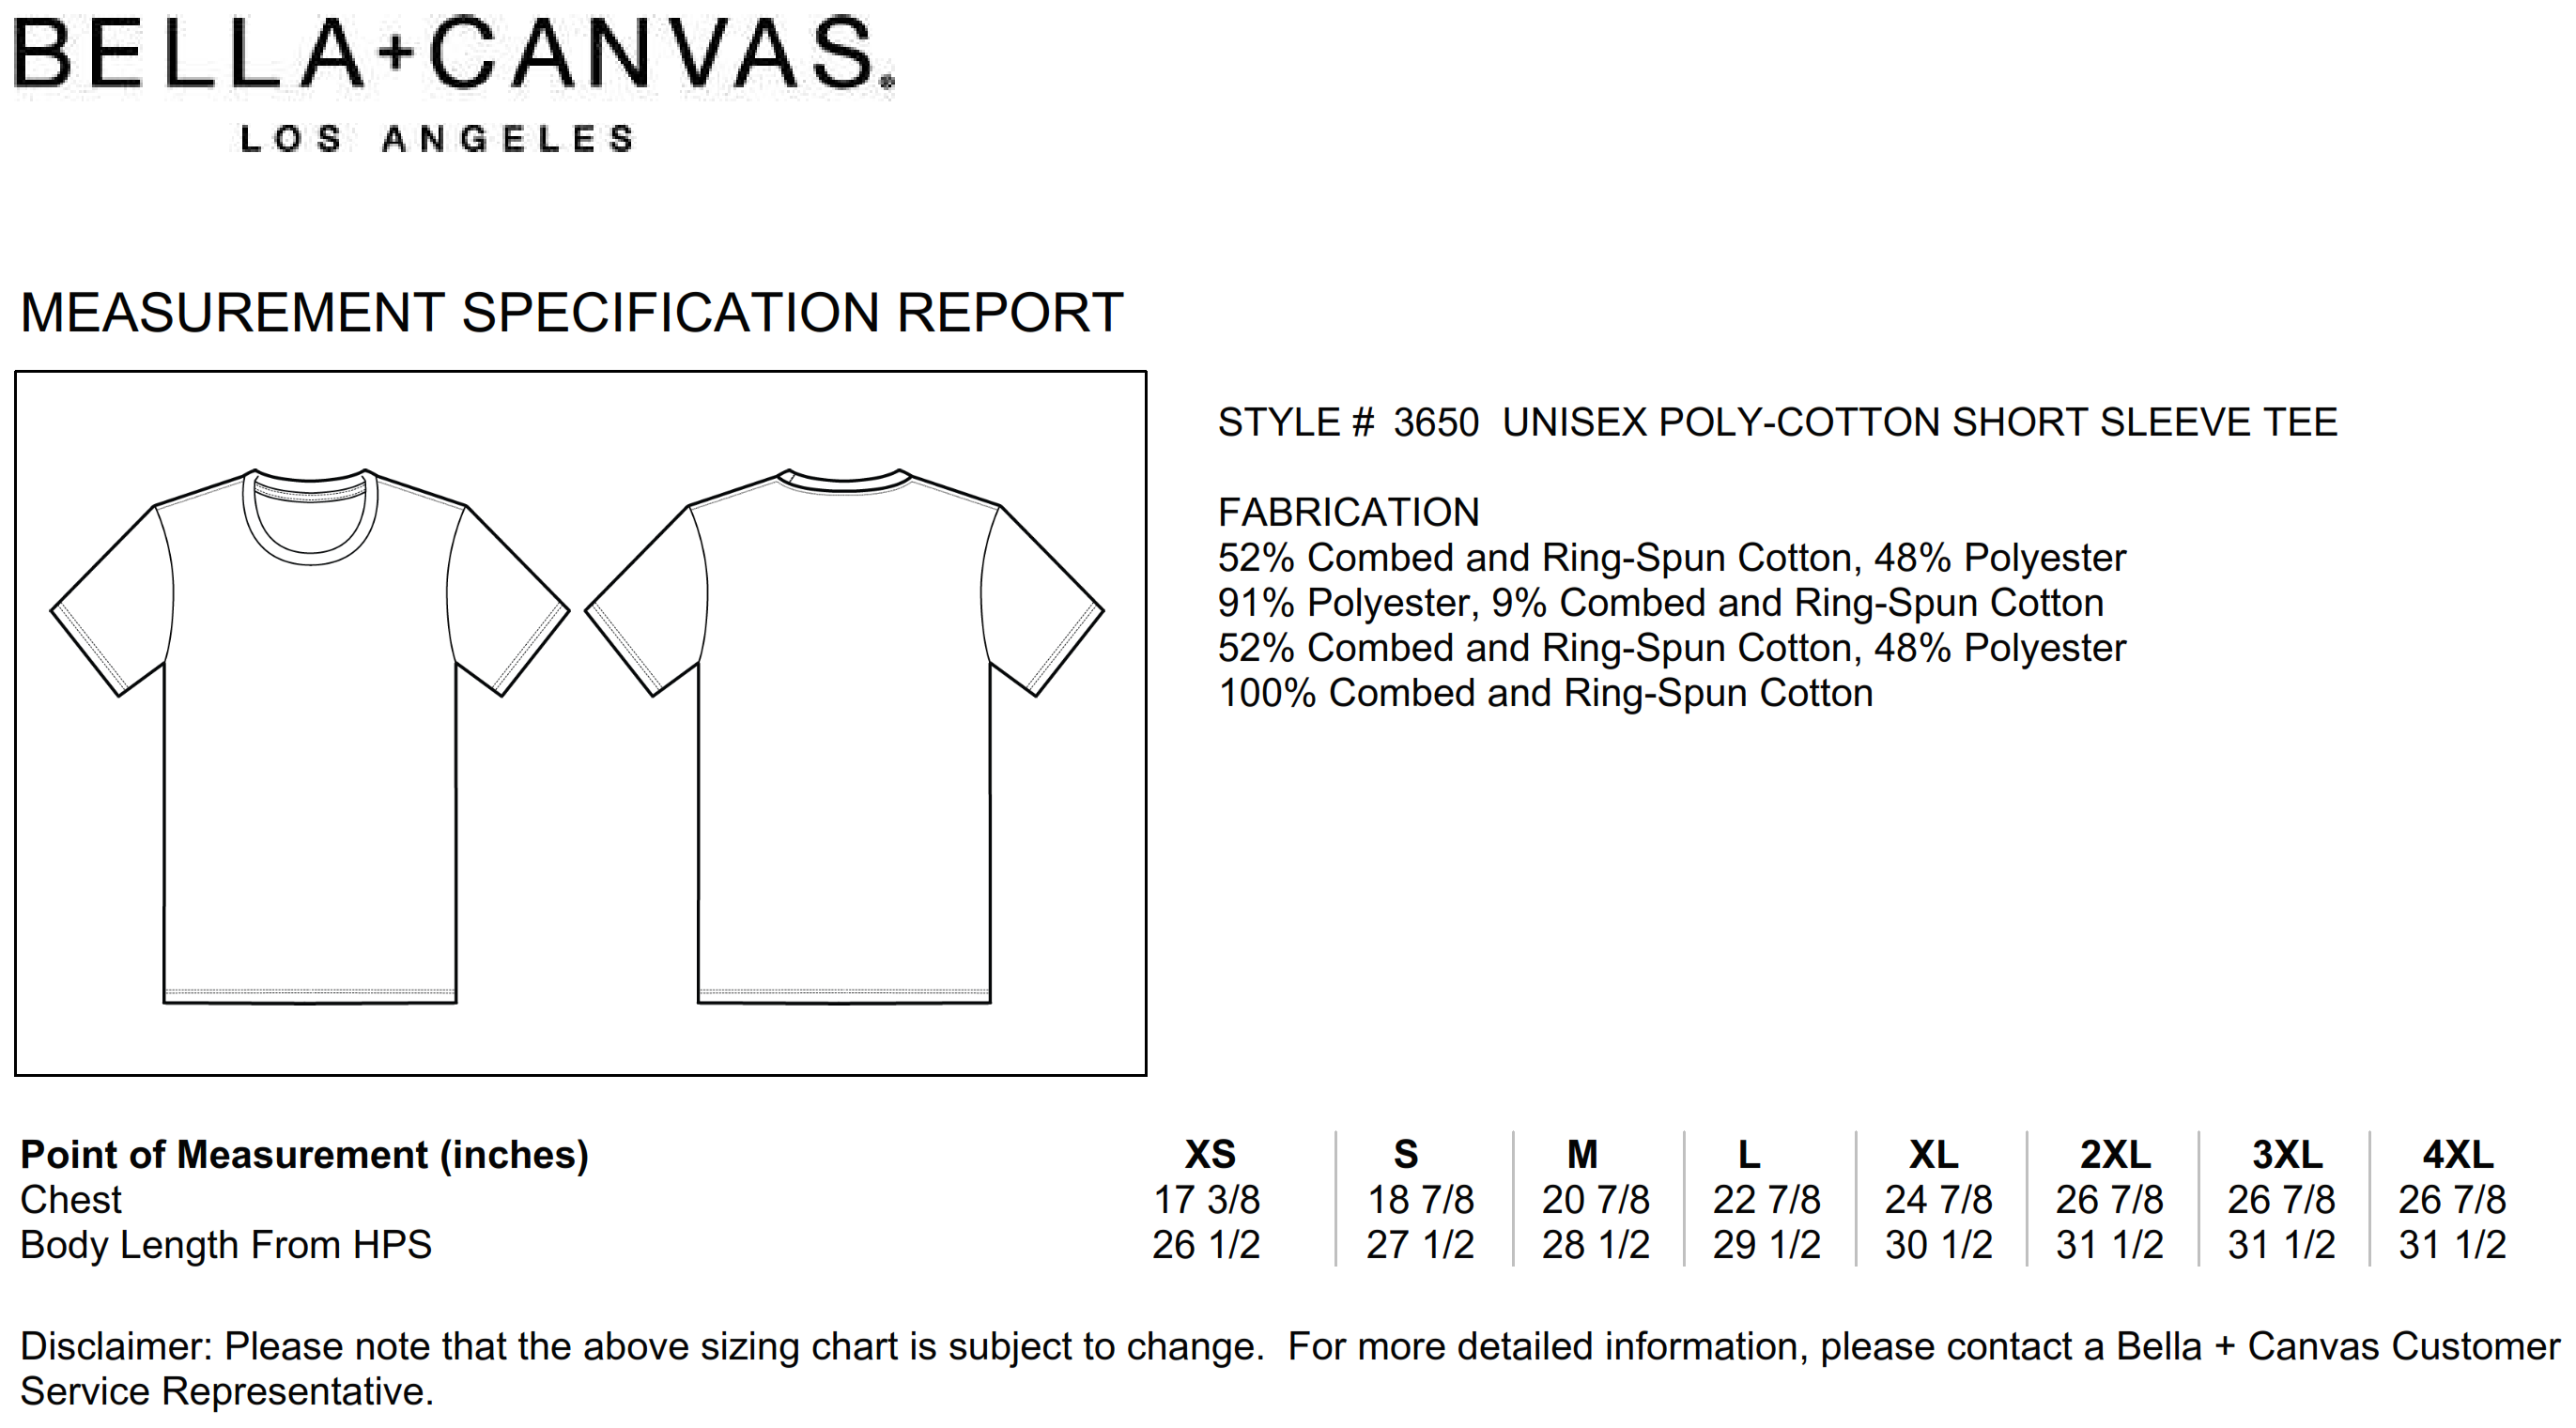 Bella+Canvas: Unisex Poly-Cotton T-Shirt 3650